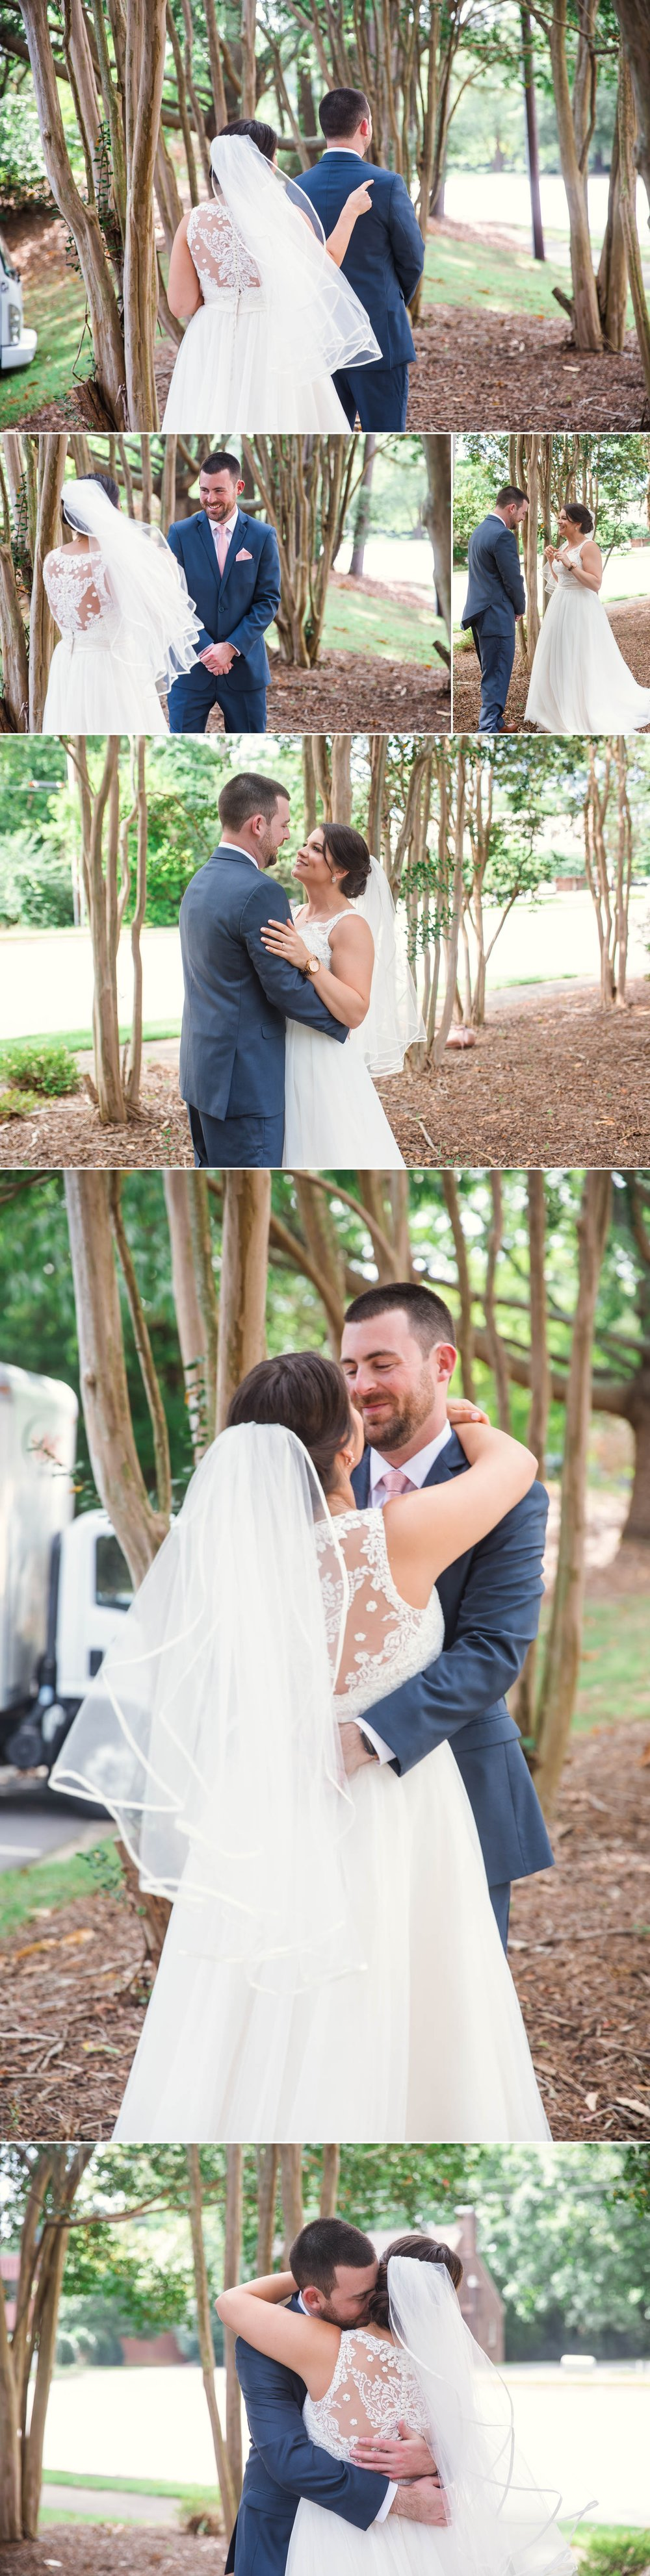 First look between bride and groom at the forever bridal house - Clare + Wallace - The Jiddy Space - Raleigh North Carolina Wedding Photographer